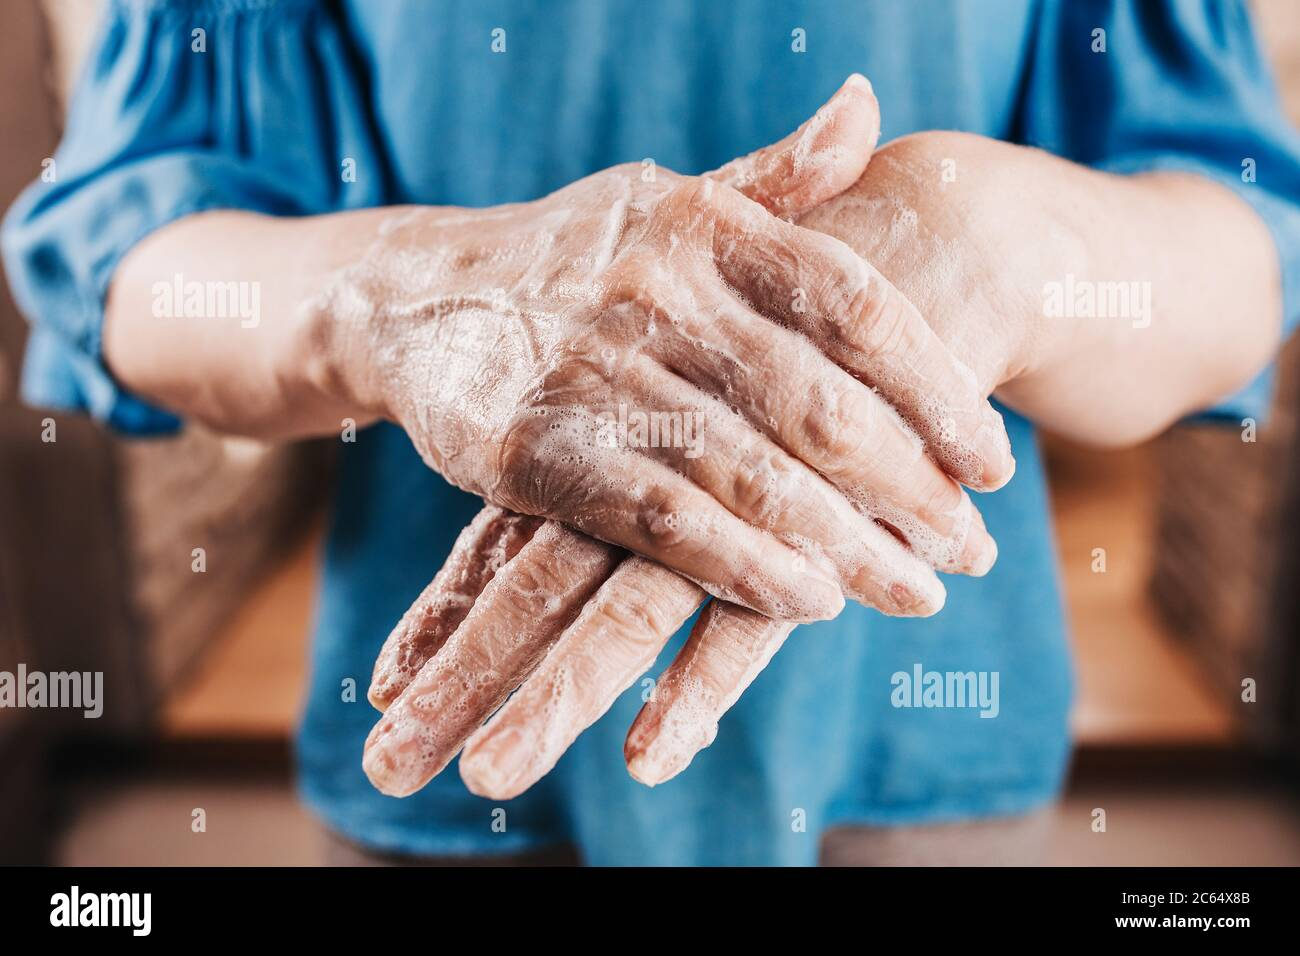 Thick Layer Of Moisturizer On Female Hands Daily Skin Care